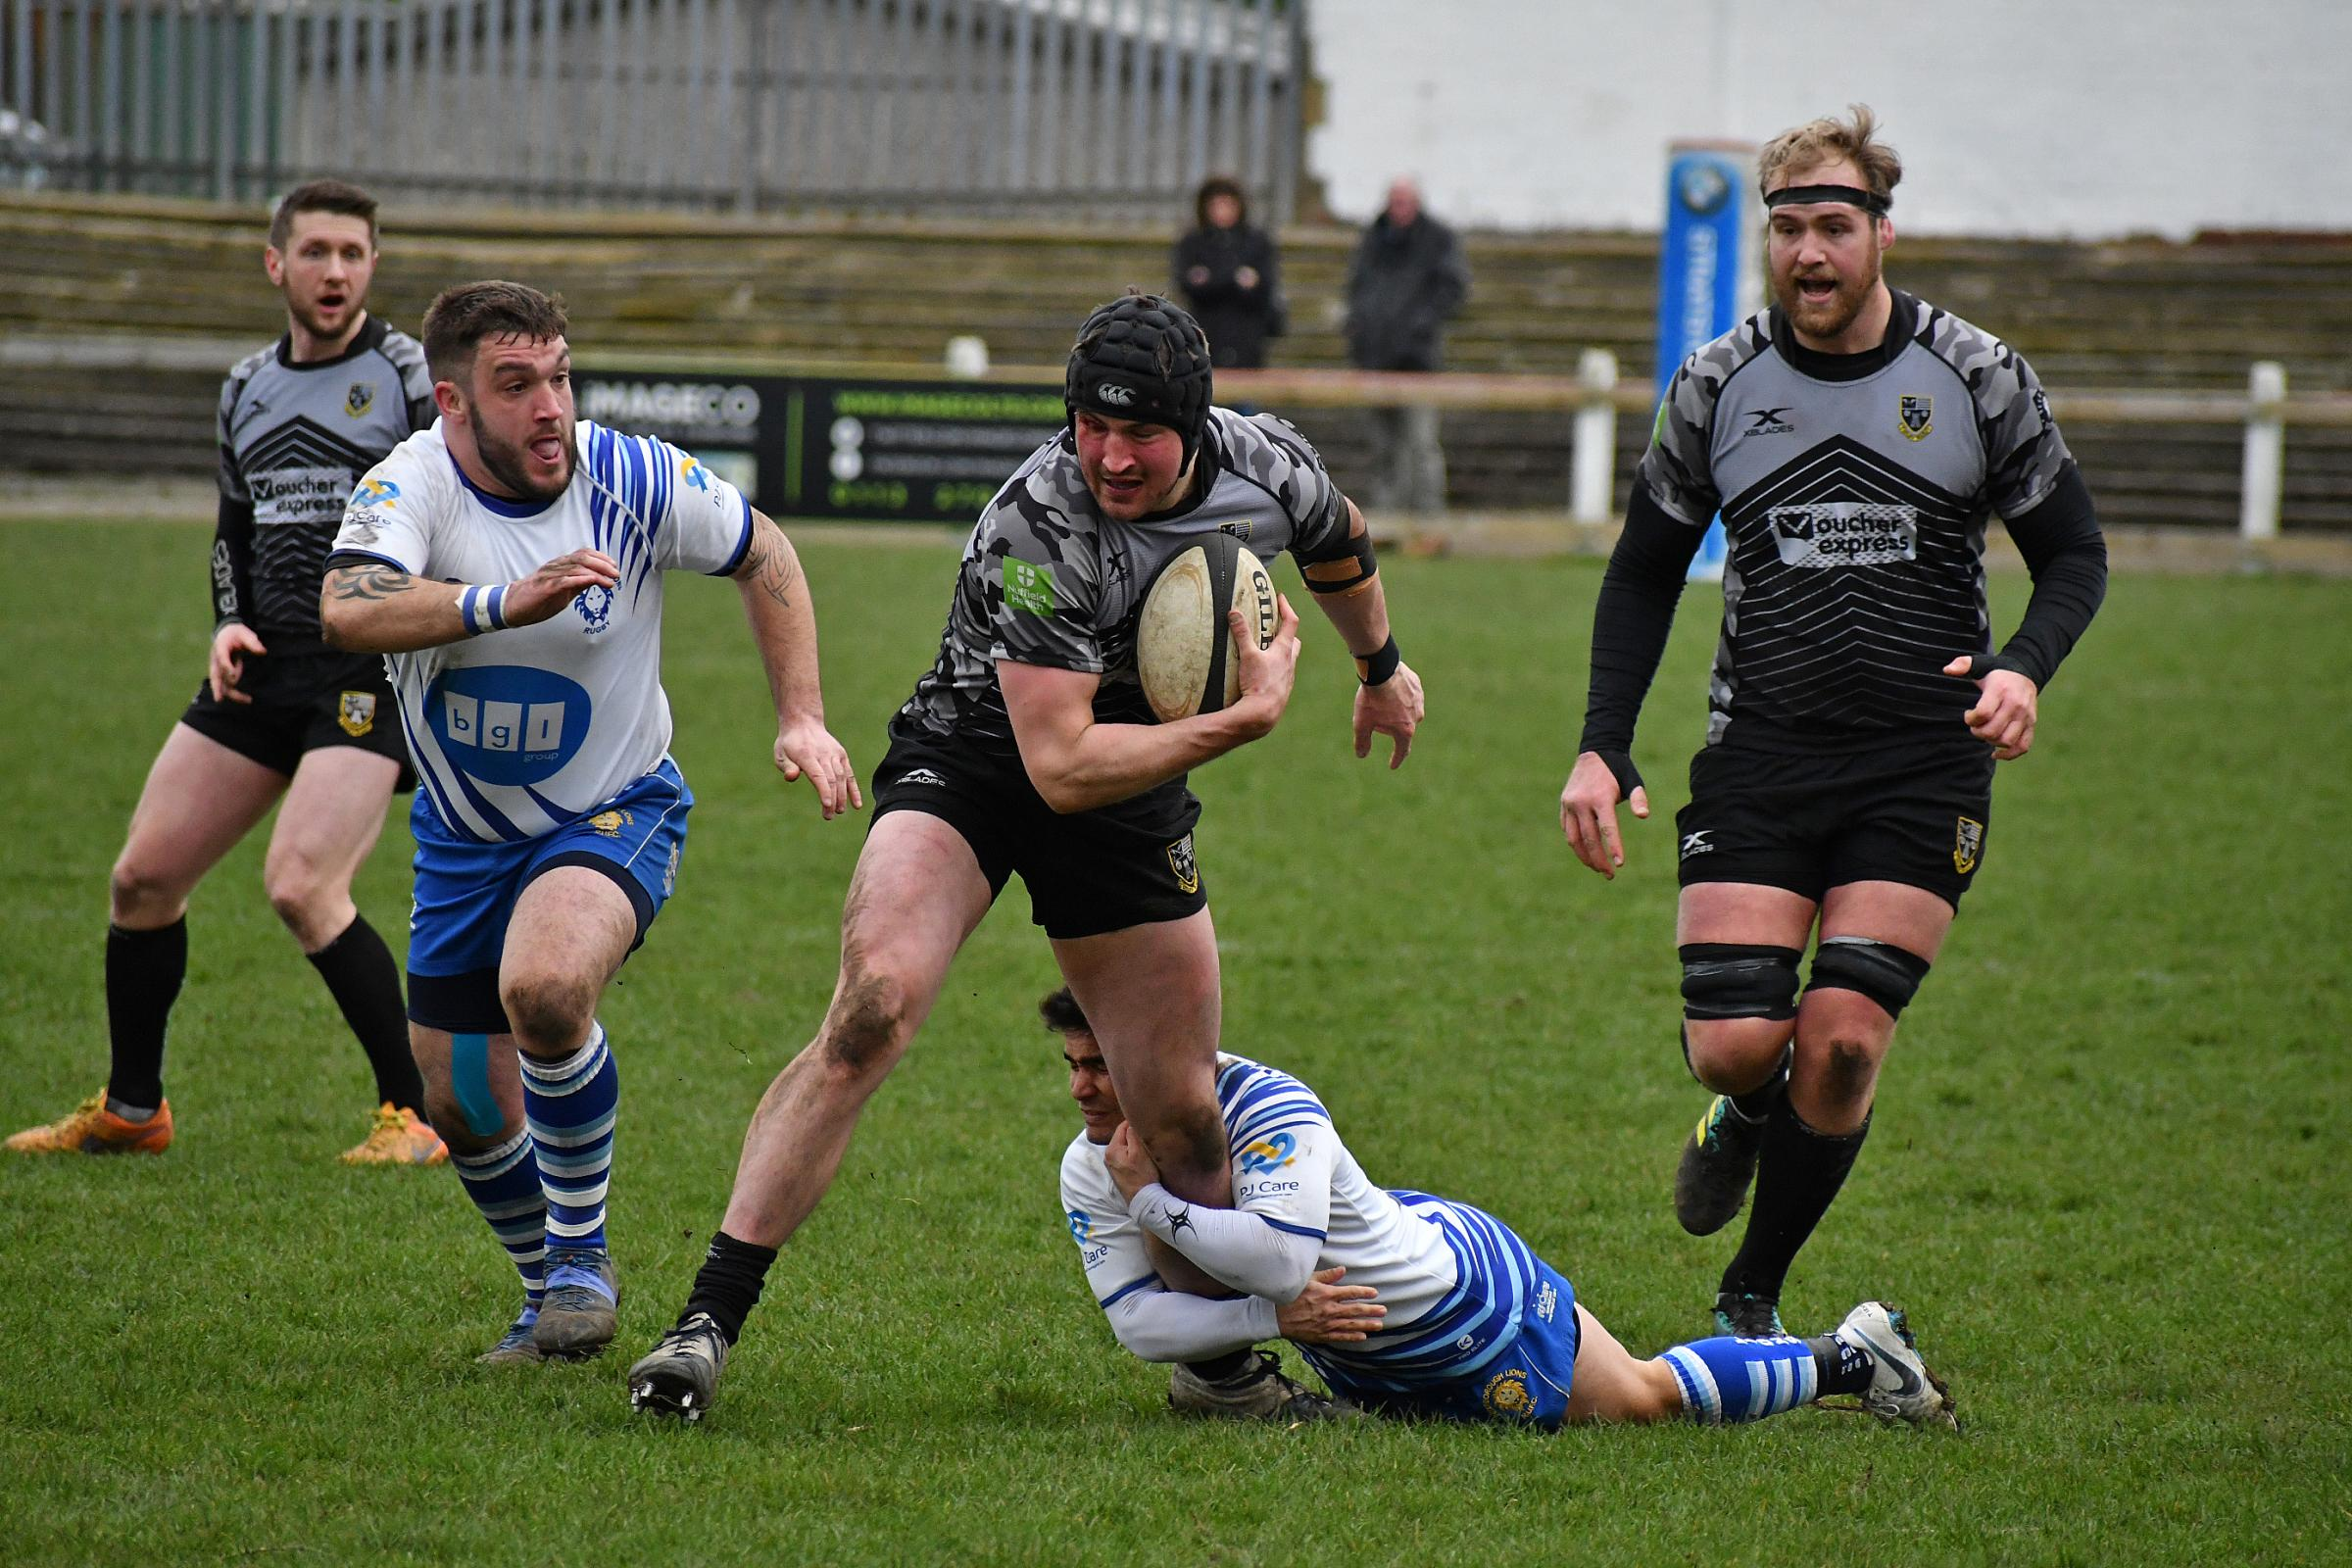 Action from Otley's game against Peterborough Lions at Cross Green on Saturday. William Rigg carries the ball. Picture: Richard Leach